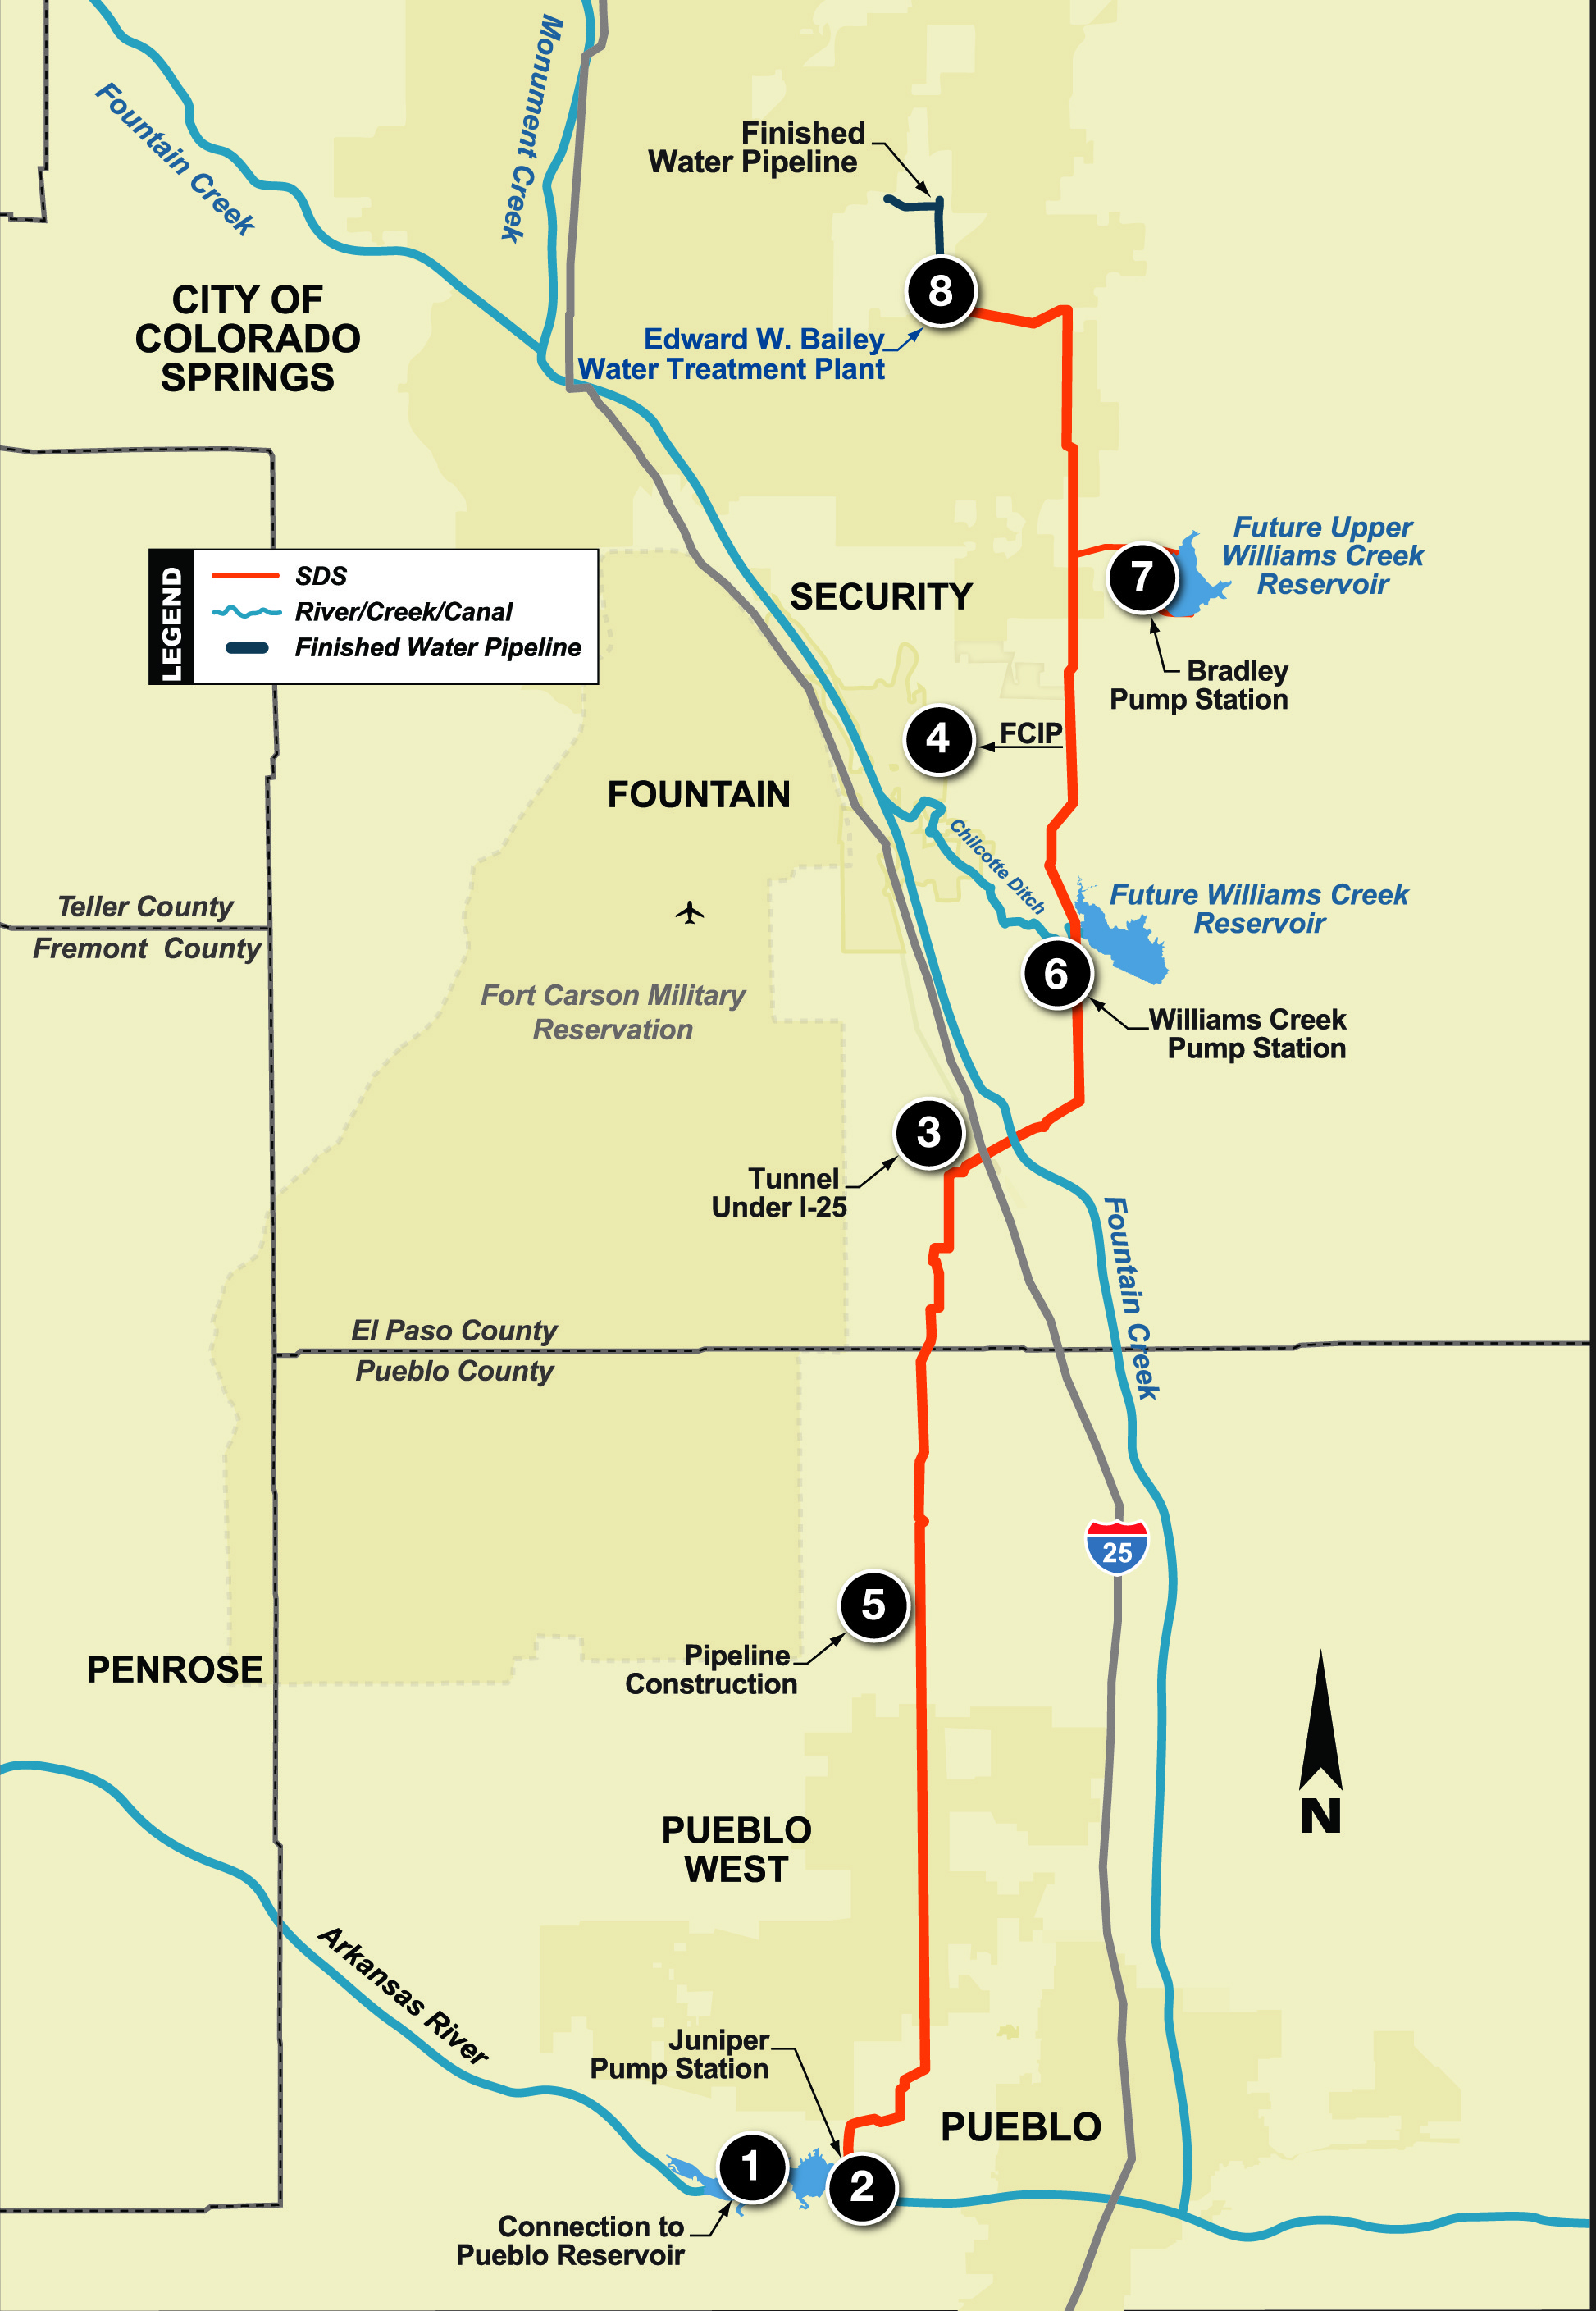 Southern Delivery System Alignment Map Colorado Springs Gazette - Map of southern colorado